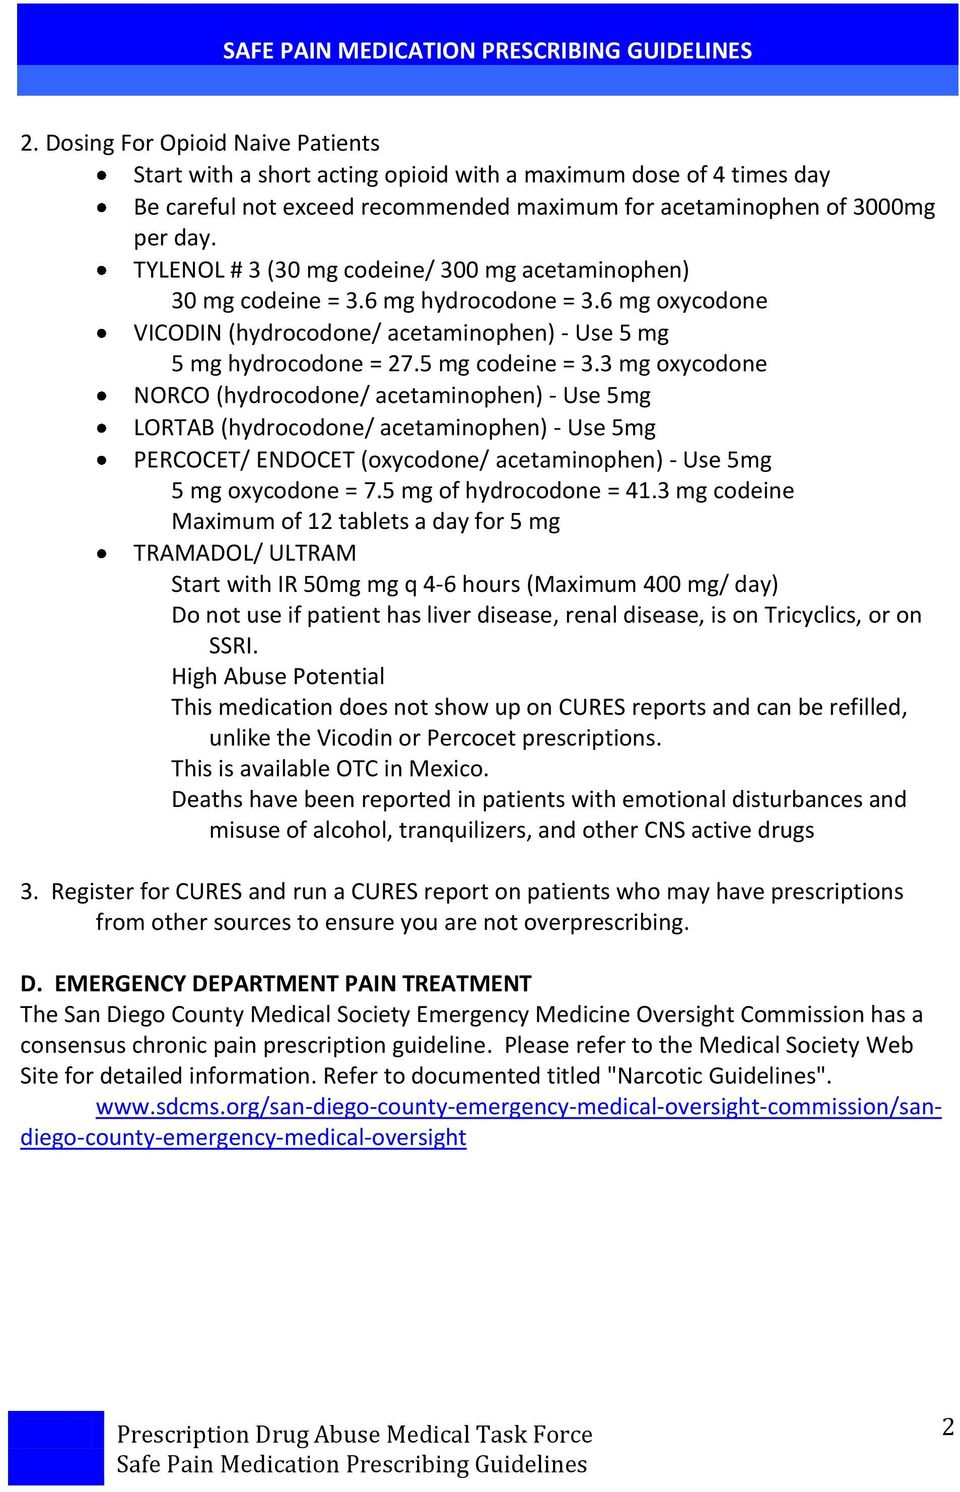 3 mg oxycodone NORCO (hydrocodone/ acetaminophen) - Use 5mg LORTAB (hydrocodone/ acetaminophen) - Use 5mg PERCOCET/ ENDOCET (oxycodone/ acetaminophen) - Use 5mg 5 mg oxycodone = 7.